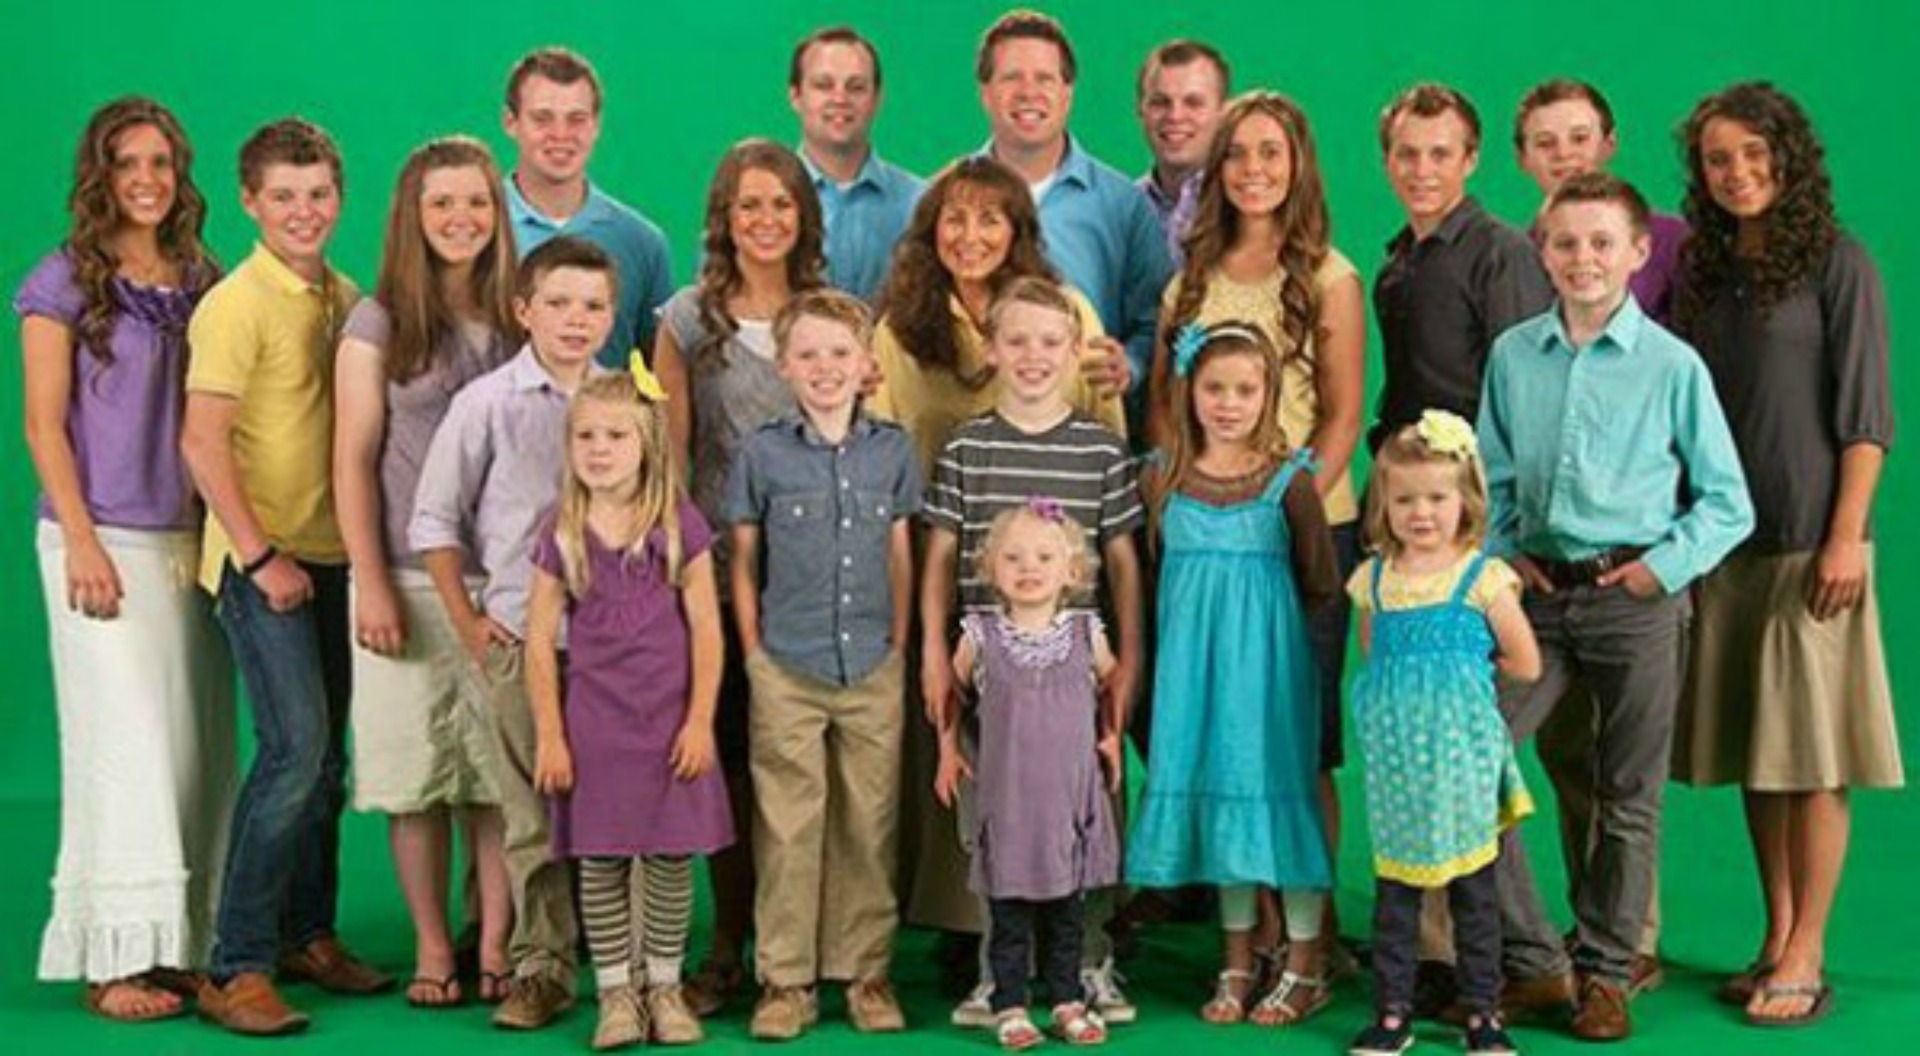 dugger guys The duggars have now been granted six years and counting in which to promote  the duggars seem so nice until you meet their terrifying  that involves the absolute submission of women.